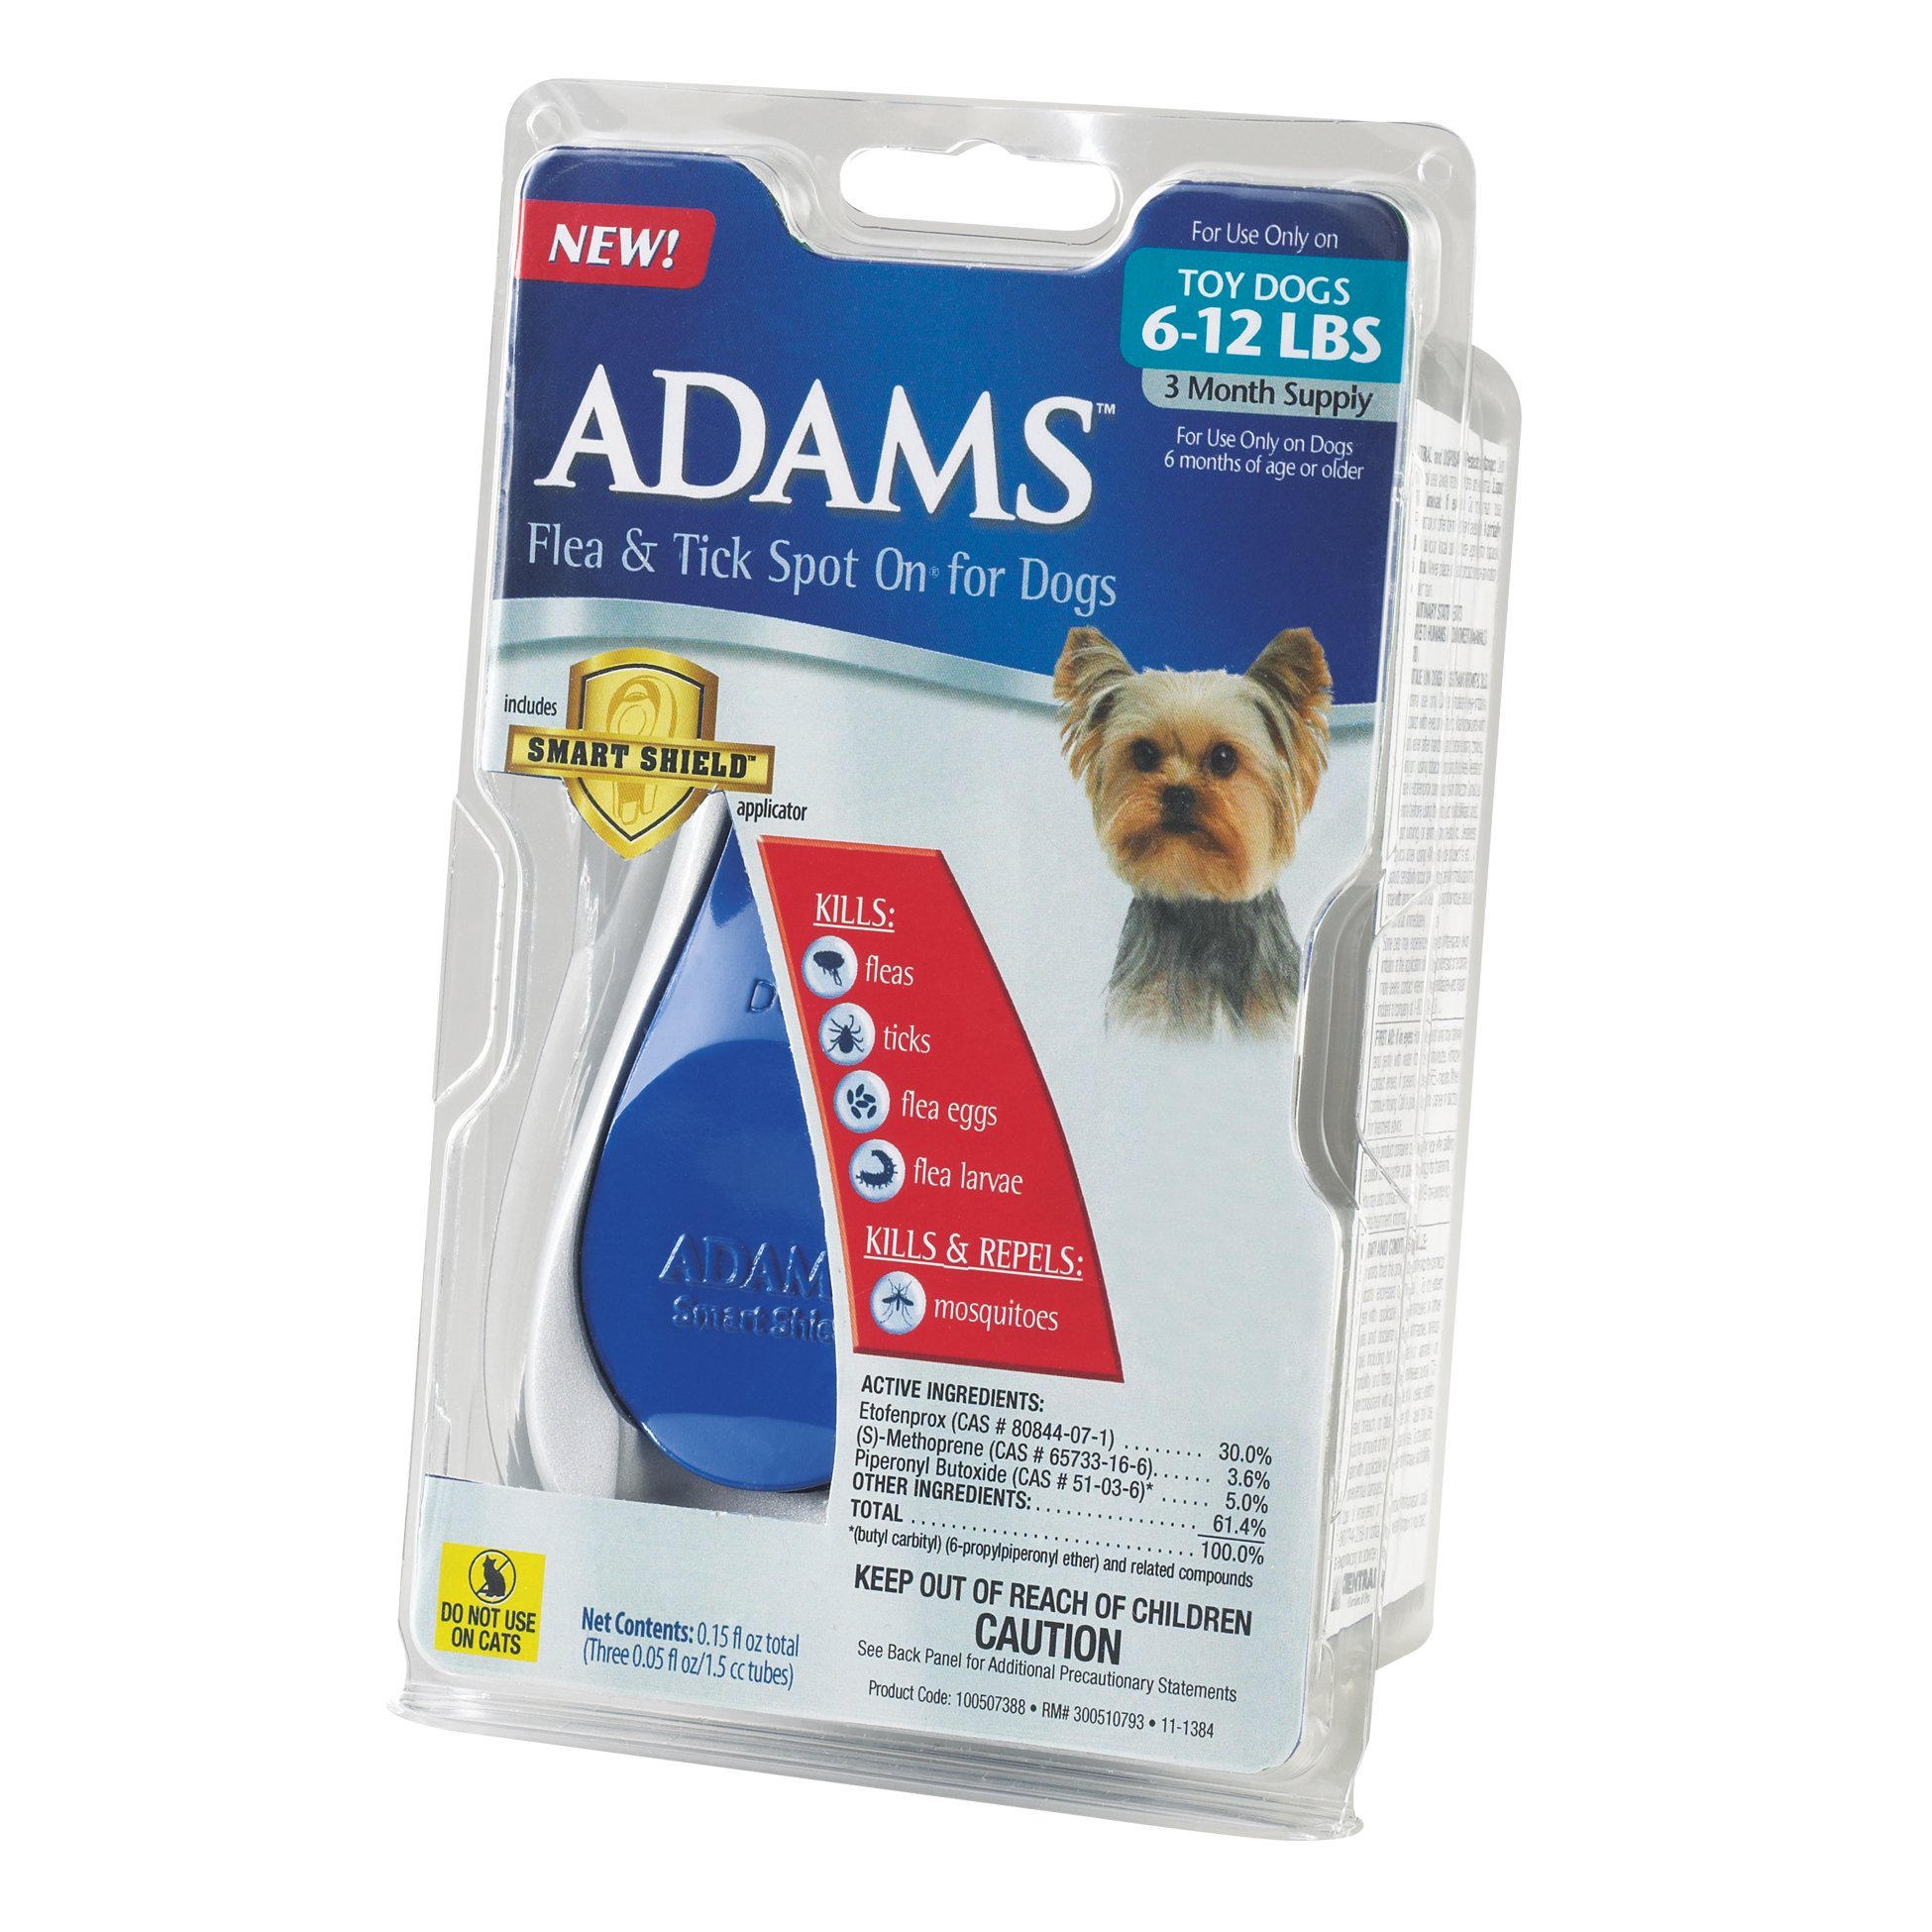 Adams Flea and Tick Spot On for Dogs, Toy Dogs 6-12 Pounds, 3 Month Supply, With Applicator